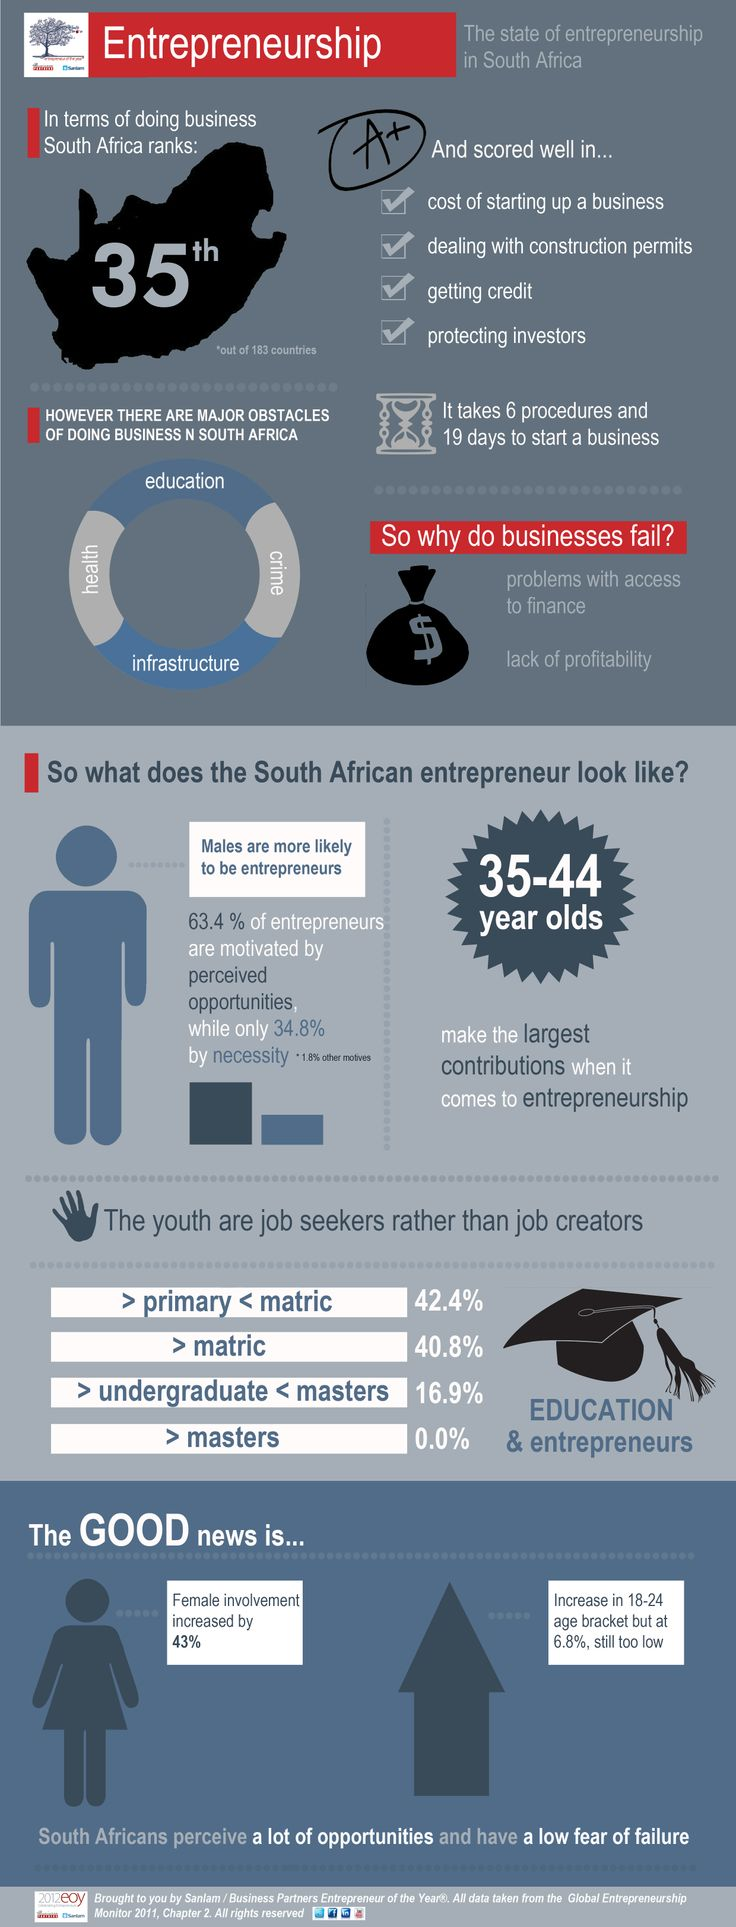 The State of Entrepreneurship in South Africa - Infographic